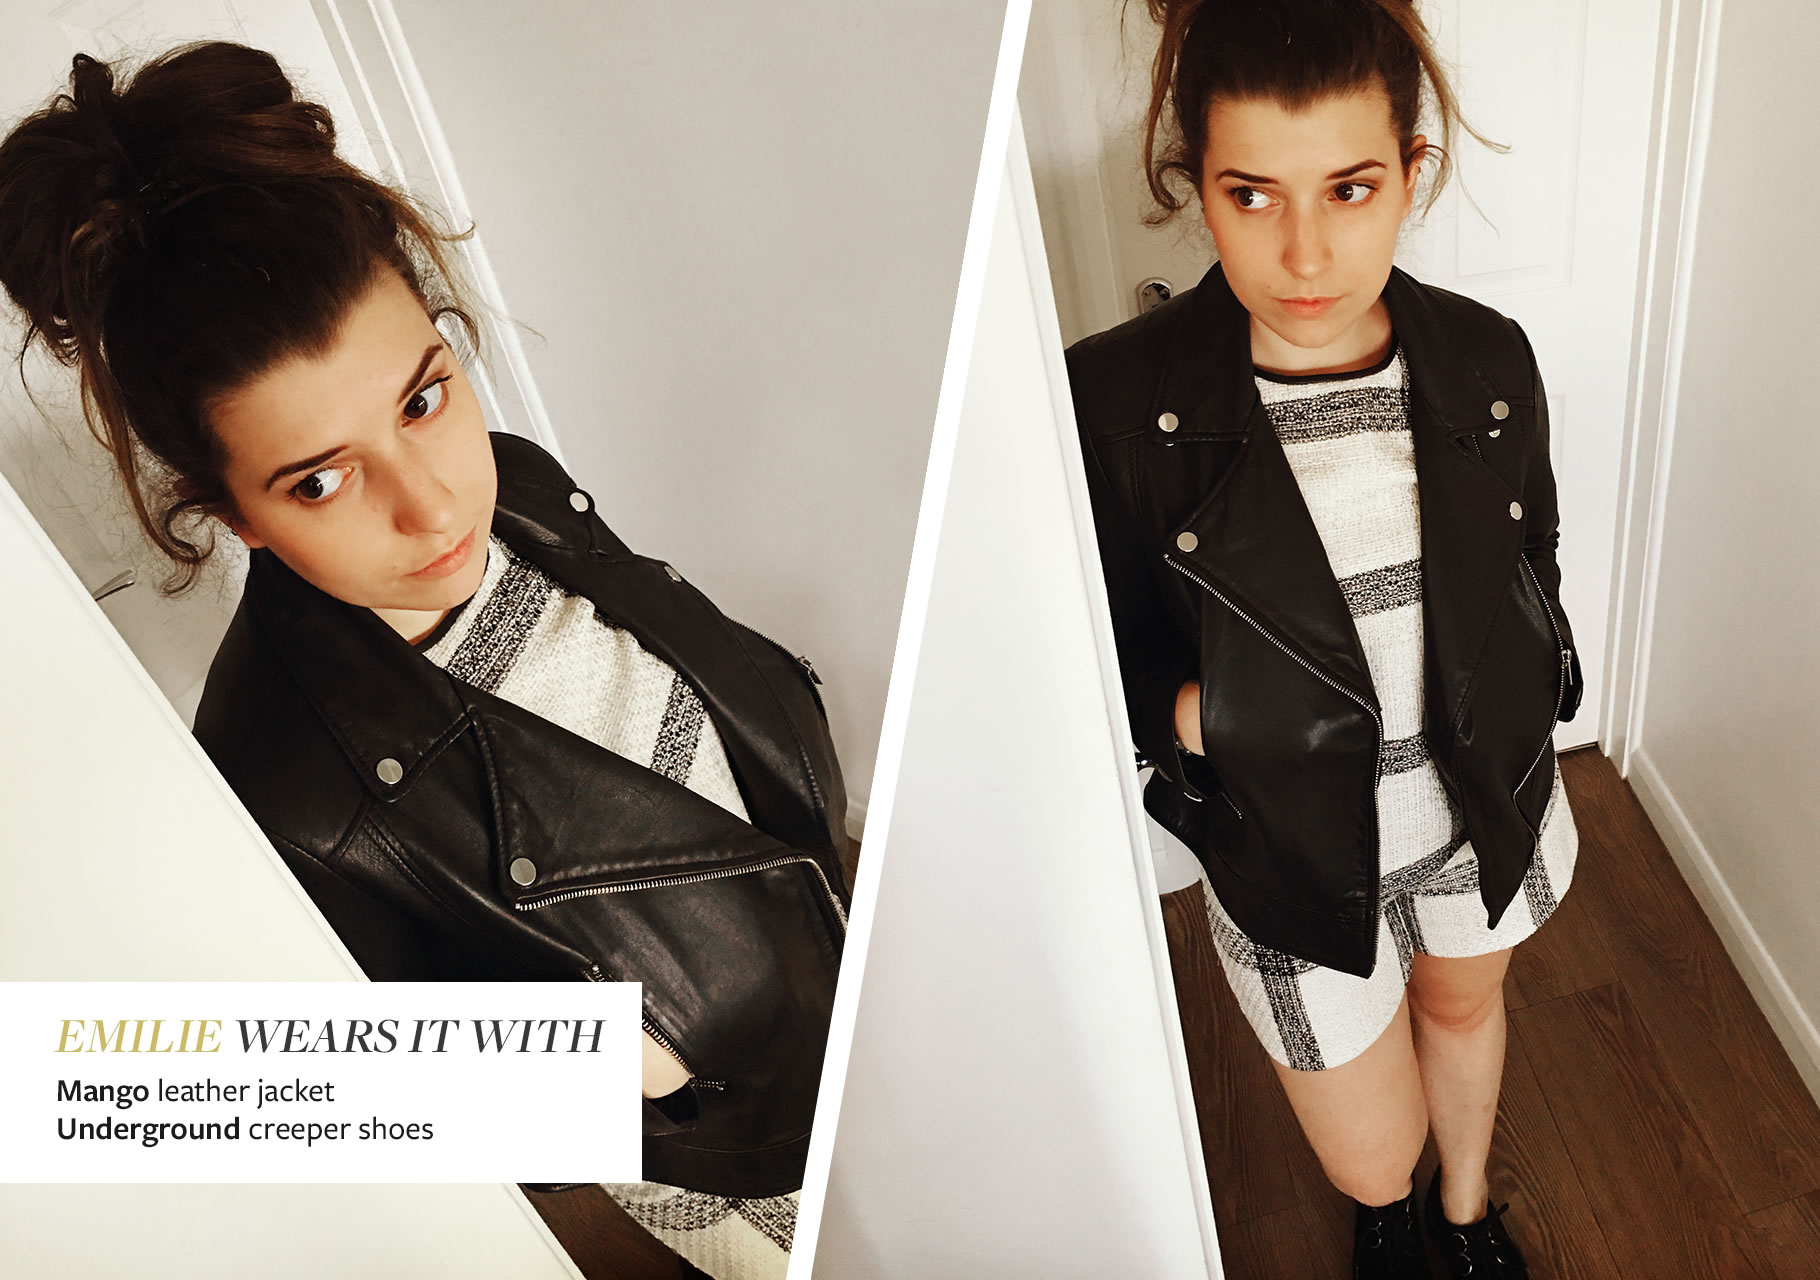 Emilie Wears it with Mango leather Jacket and Underground Creeper Shoes